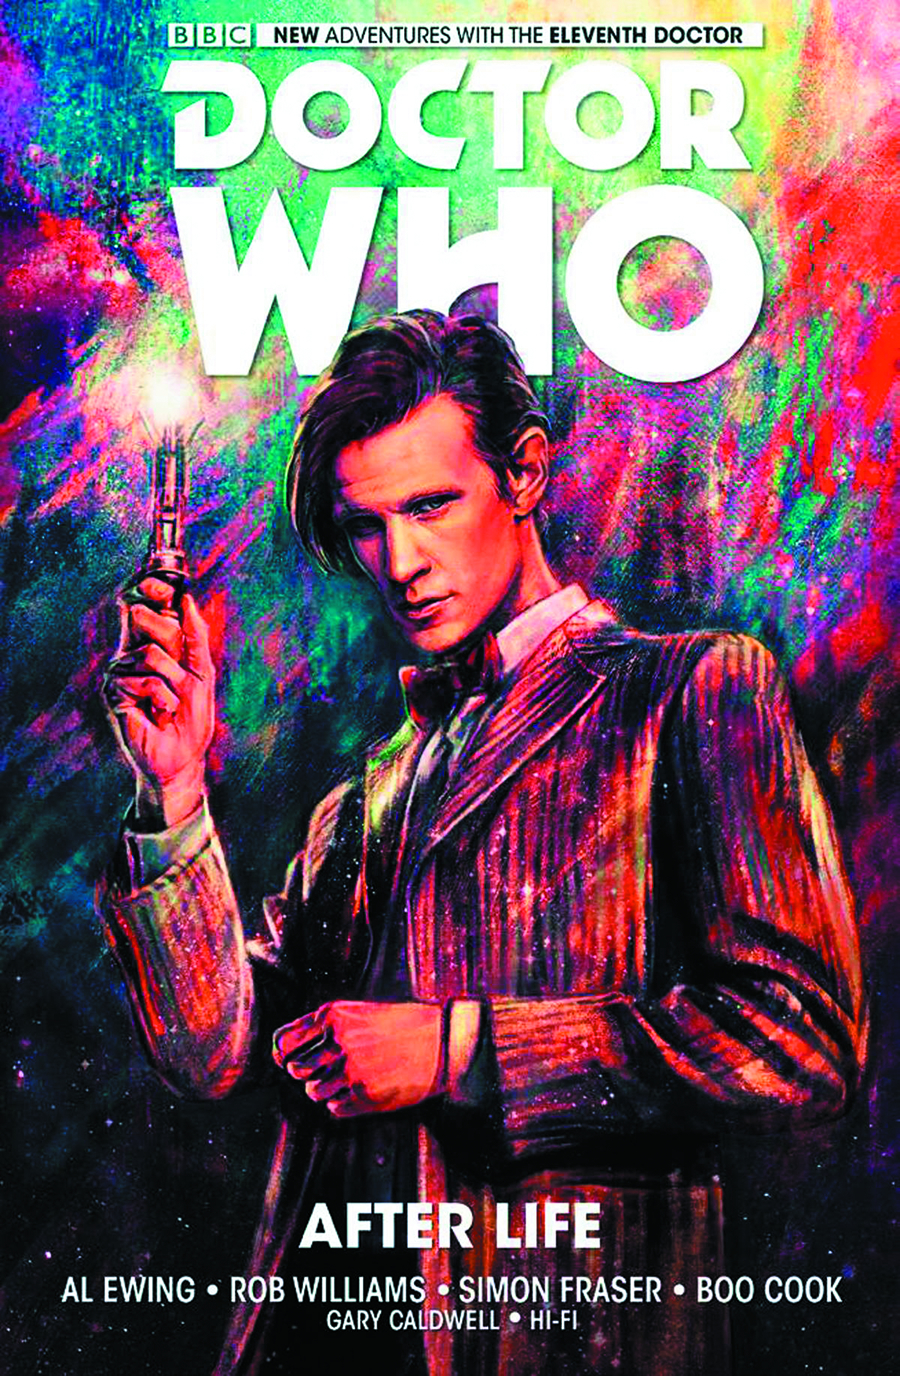 DOCTOR WHO 11TH TP VOL 01 AFTER LIFE